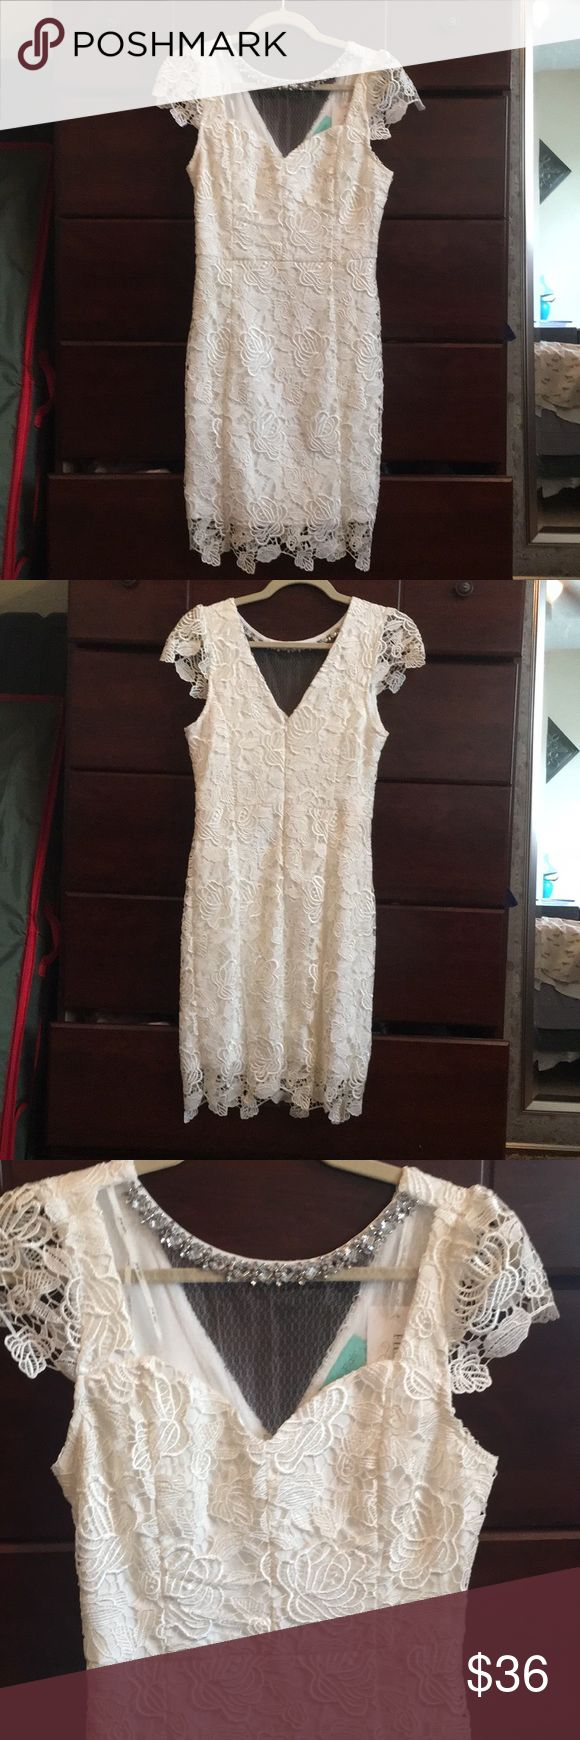 I just added this listing on Poshmark: Filly Flair NWT White Floral Lace Dress. #shopmycloset #poshmark #fashion #shopping #style #forsale #Filly Flair #Dresses & Skirts